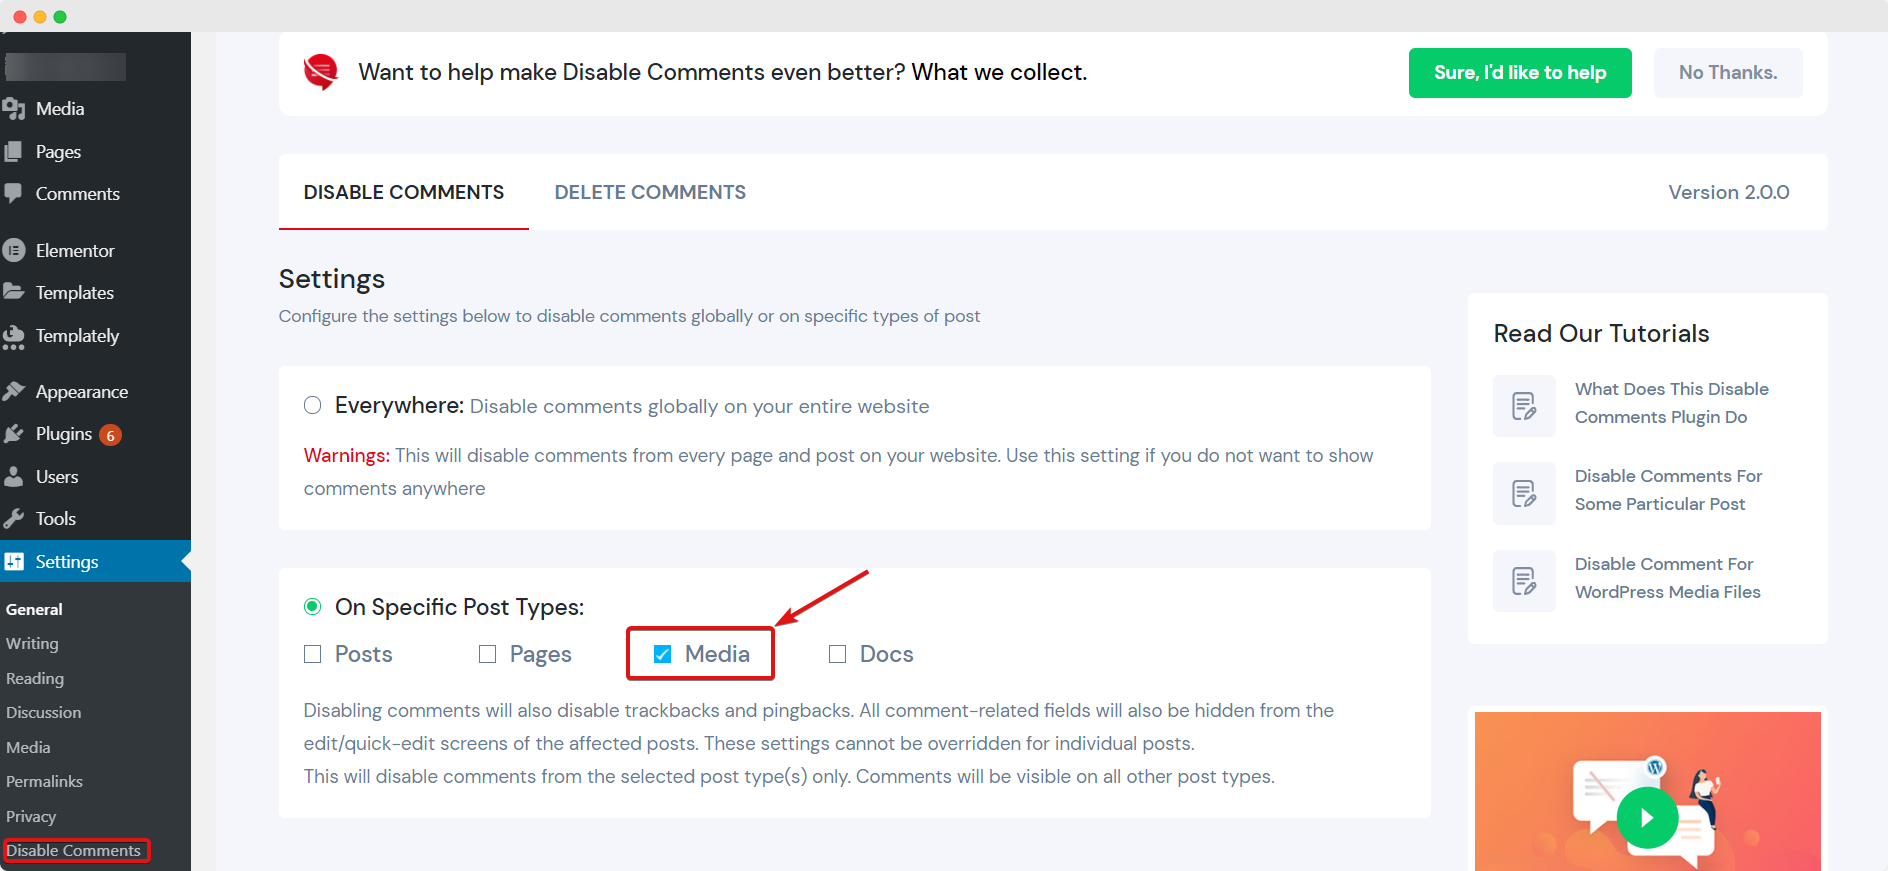 Disable Comments For WordPress Media Files